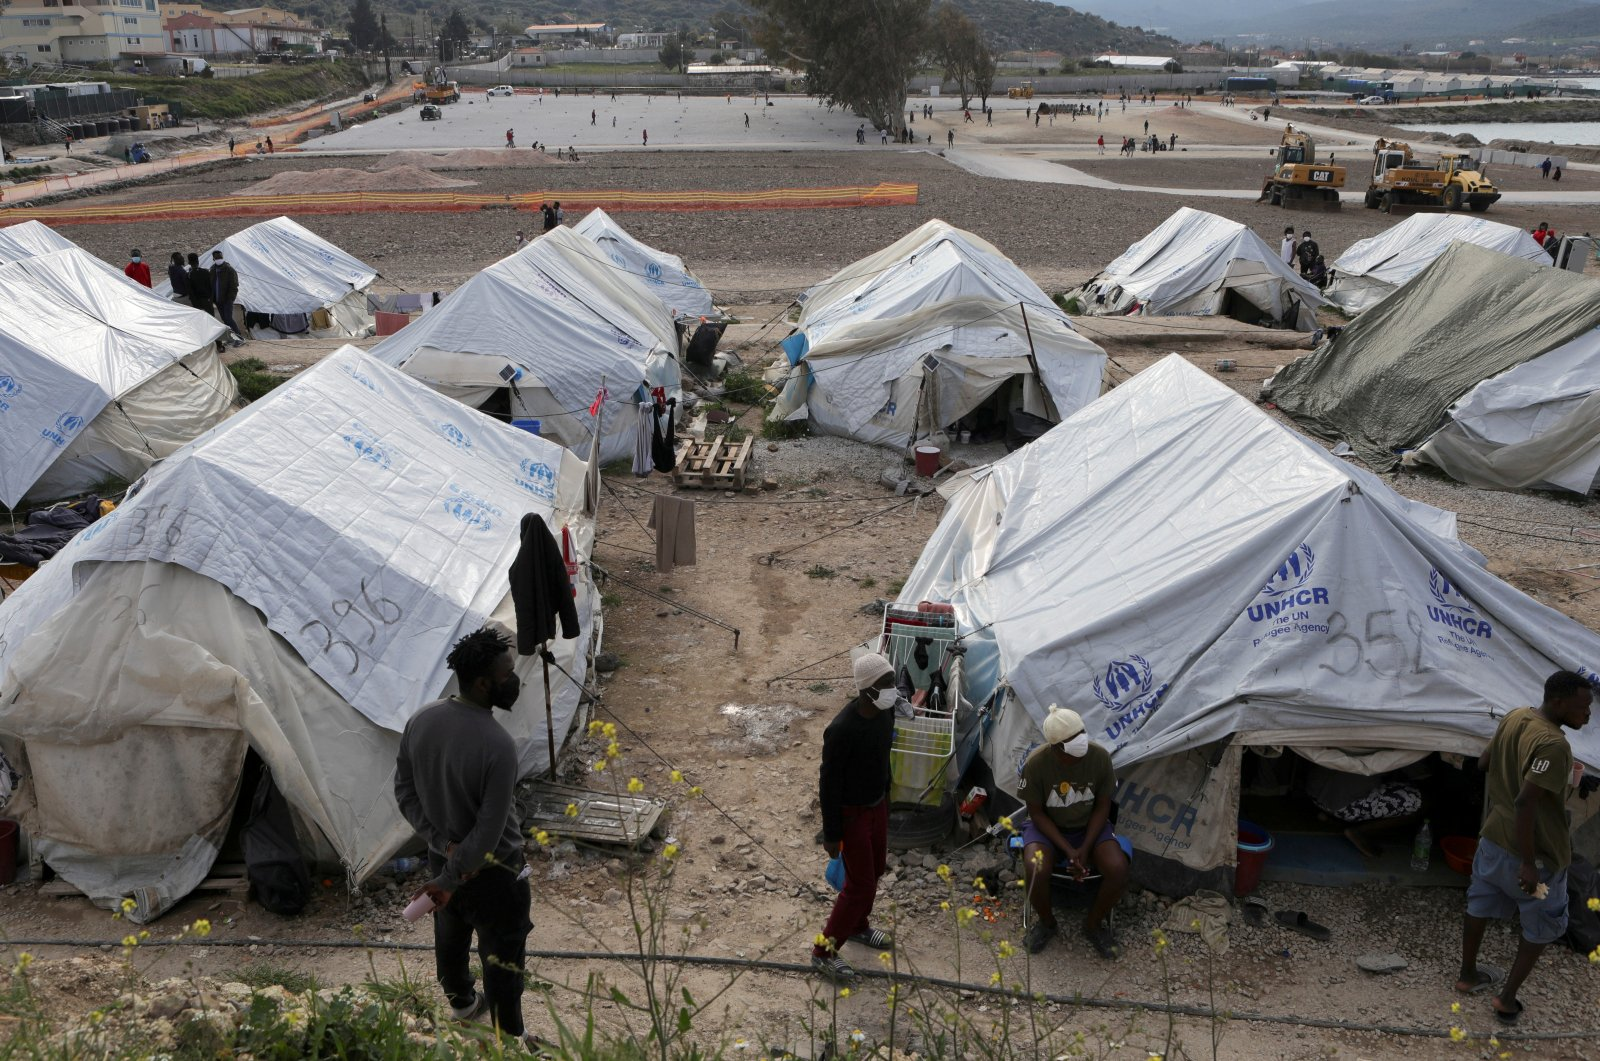 Refugees and migrants stand next to tents in the Mavrovouni camp on the island of Lesbos, Greece, March 29, 2021. (Reuters Photo)